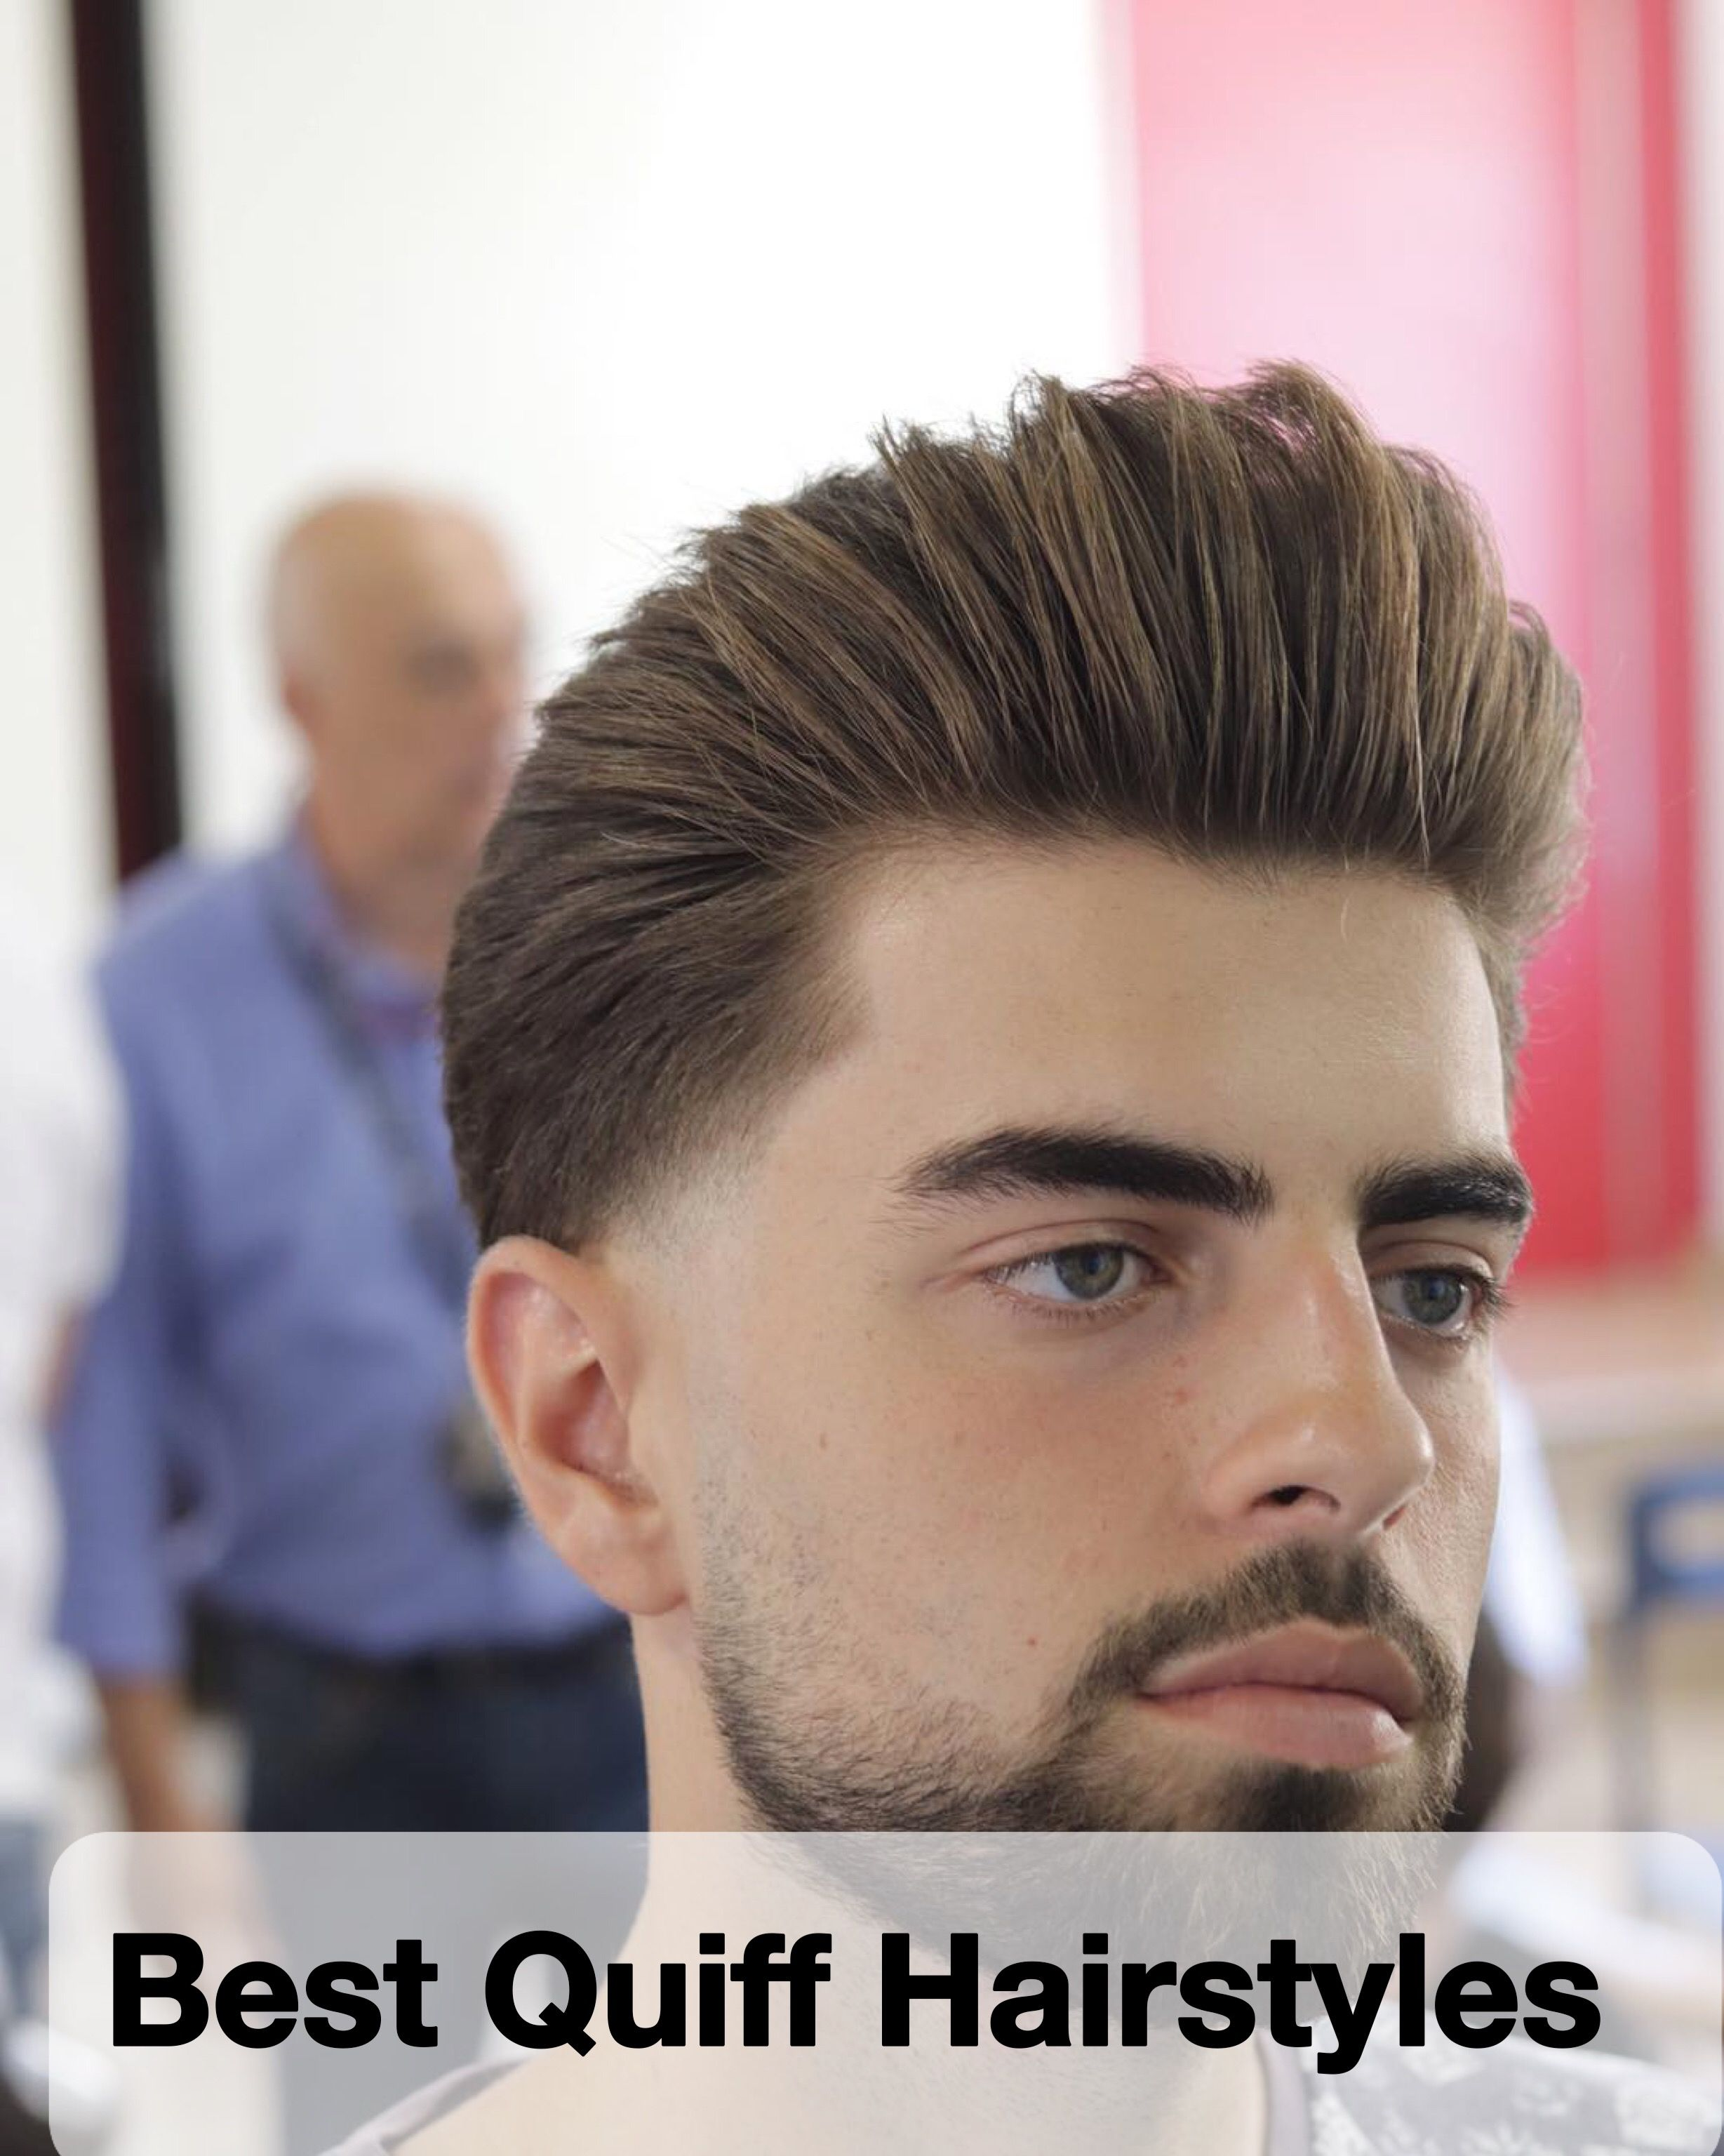 15 Quiff Hairstyles We Absolutely Love Men S Hairstyles Mens Hairstyles Medium Quiff Hairstyles Mens Hairstyles Quiff